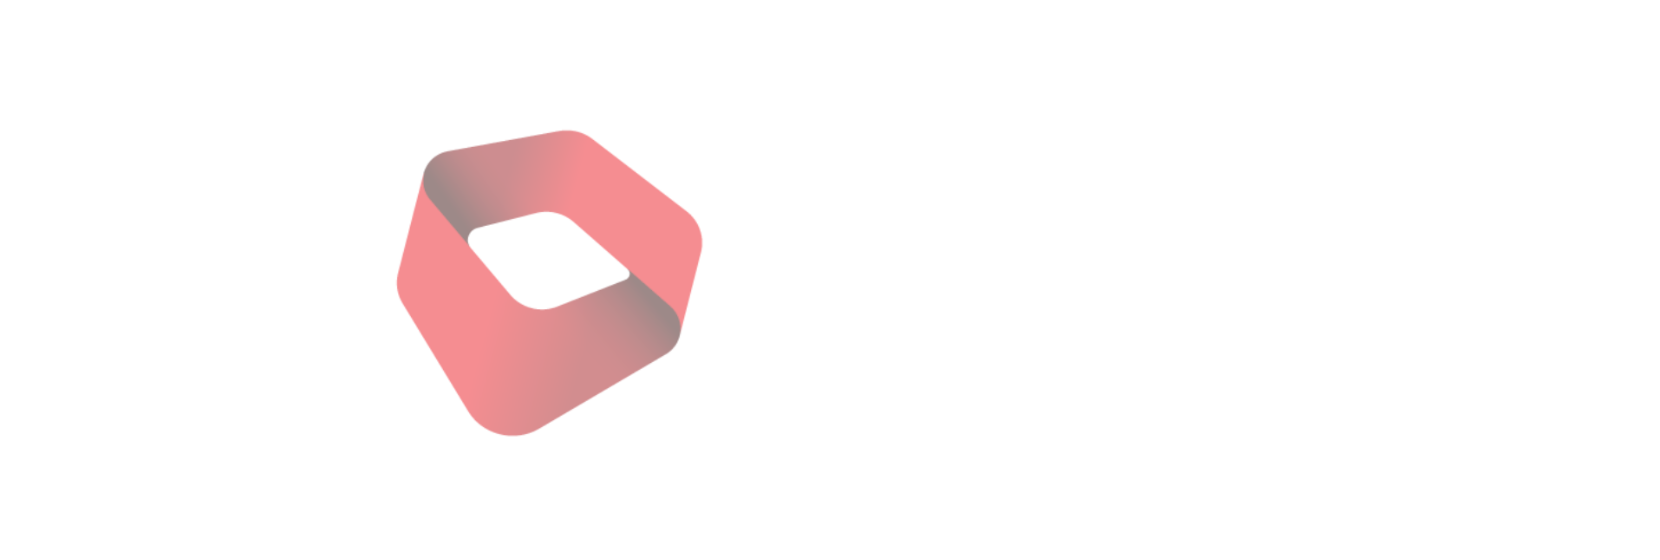 Fung Academy